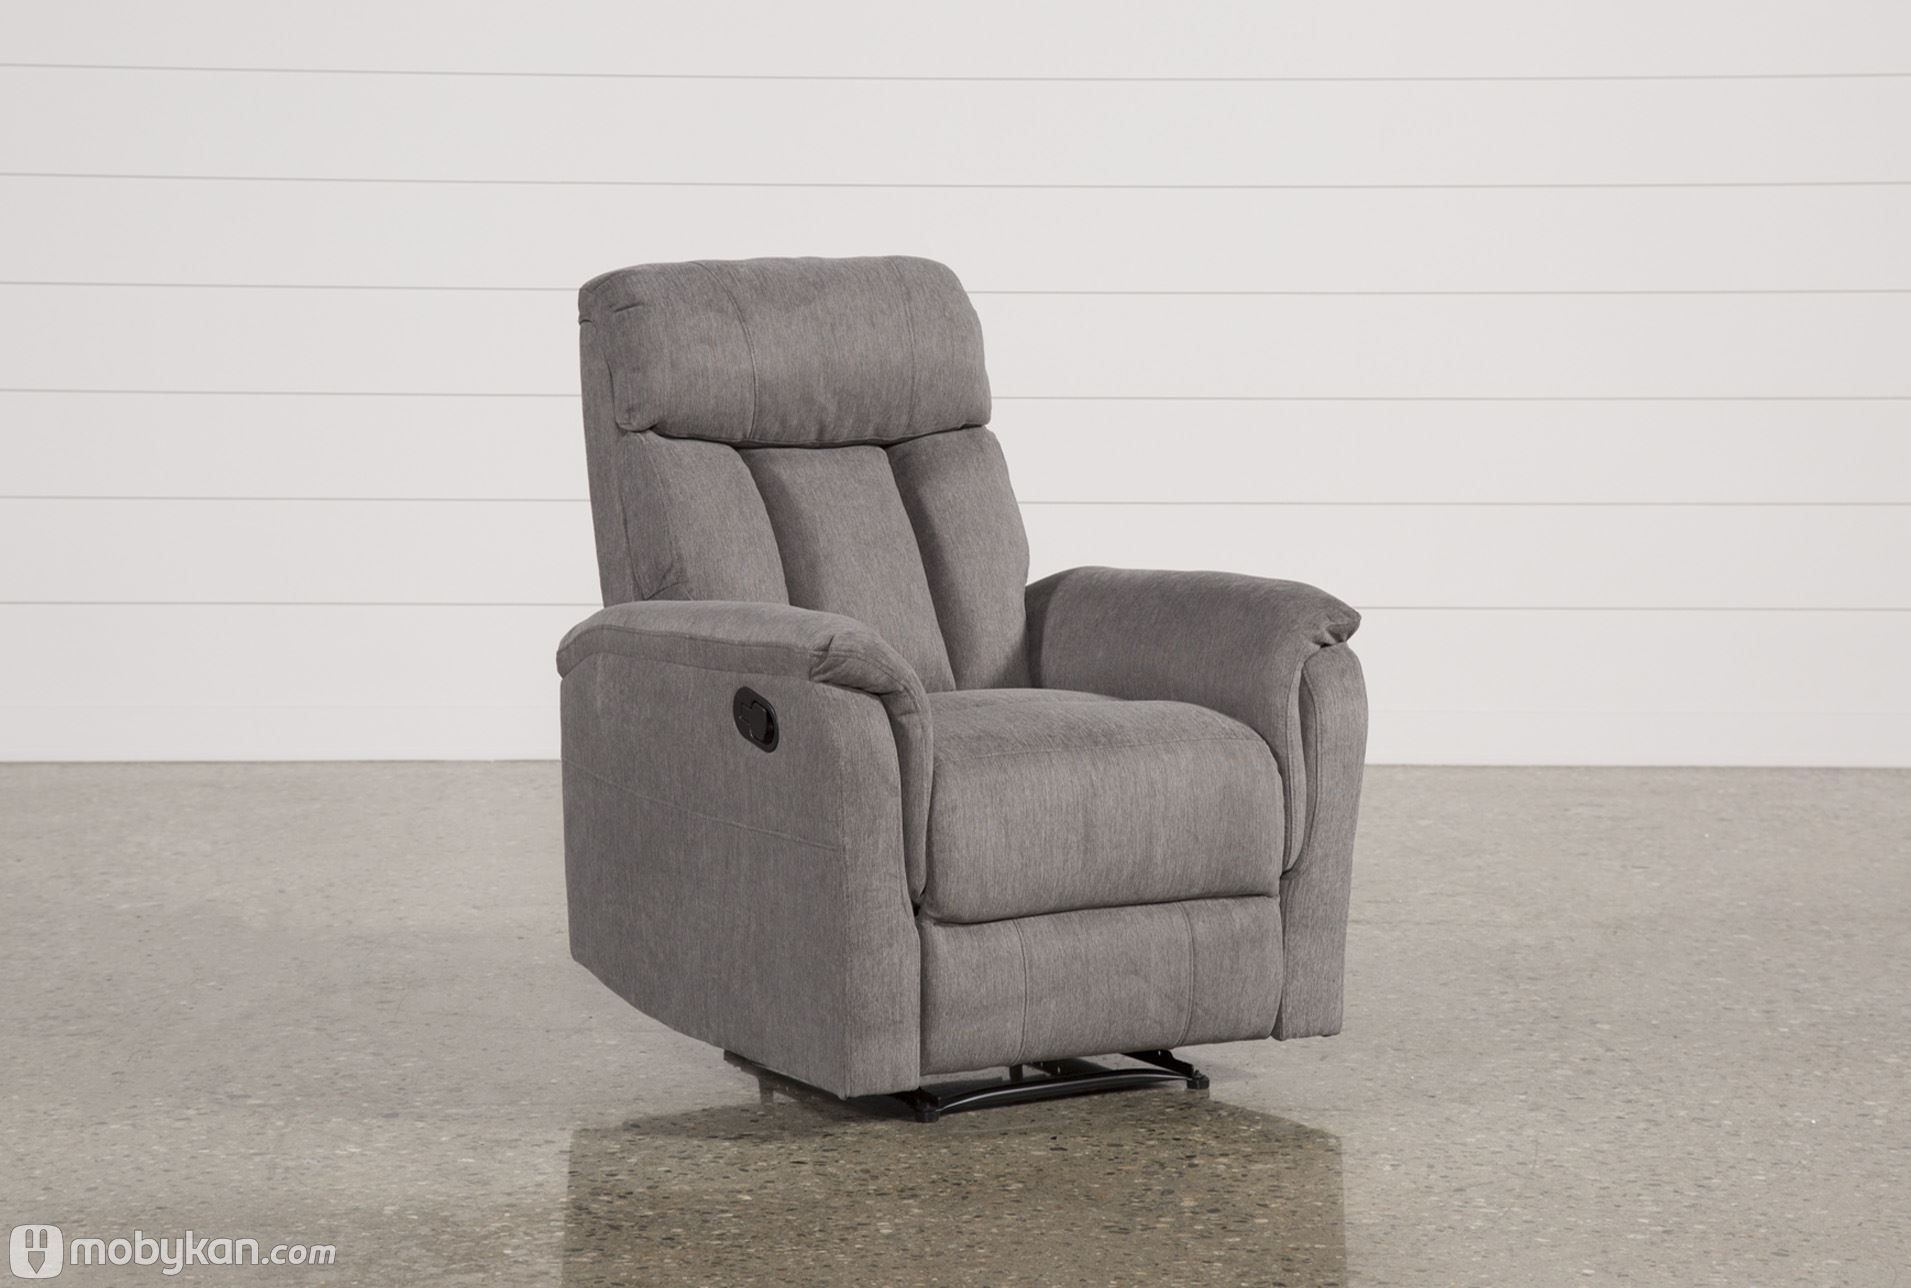 تصميمات مختلفة ل lazy boy chair Recliner, Grey recliner